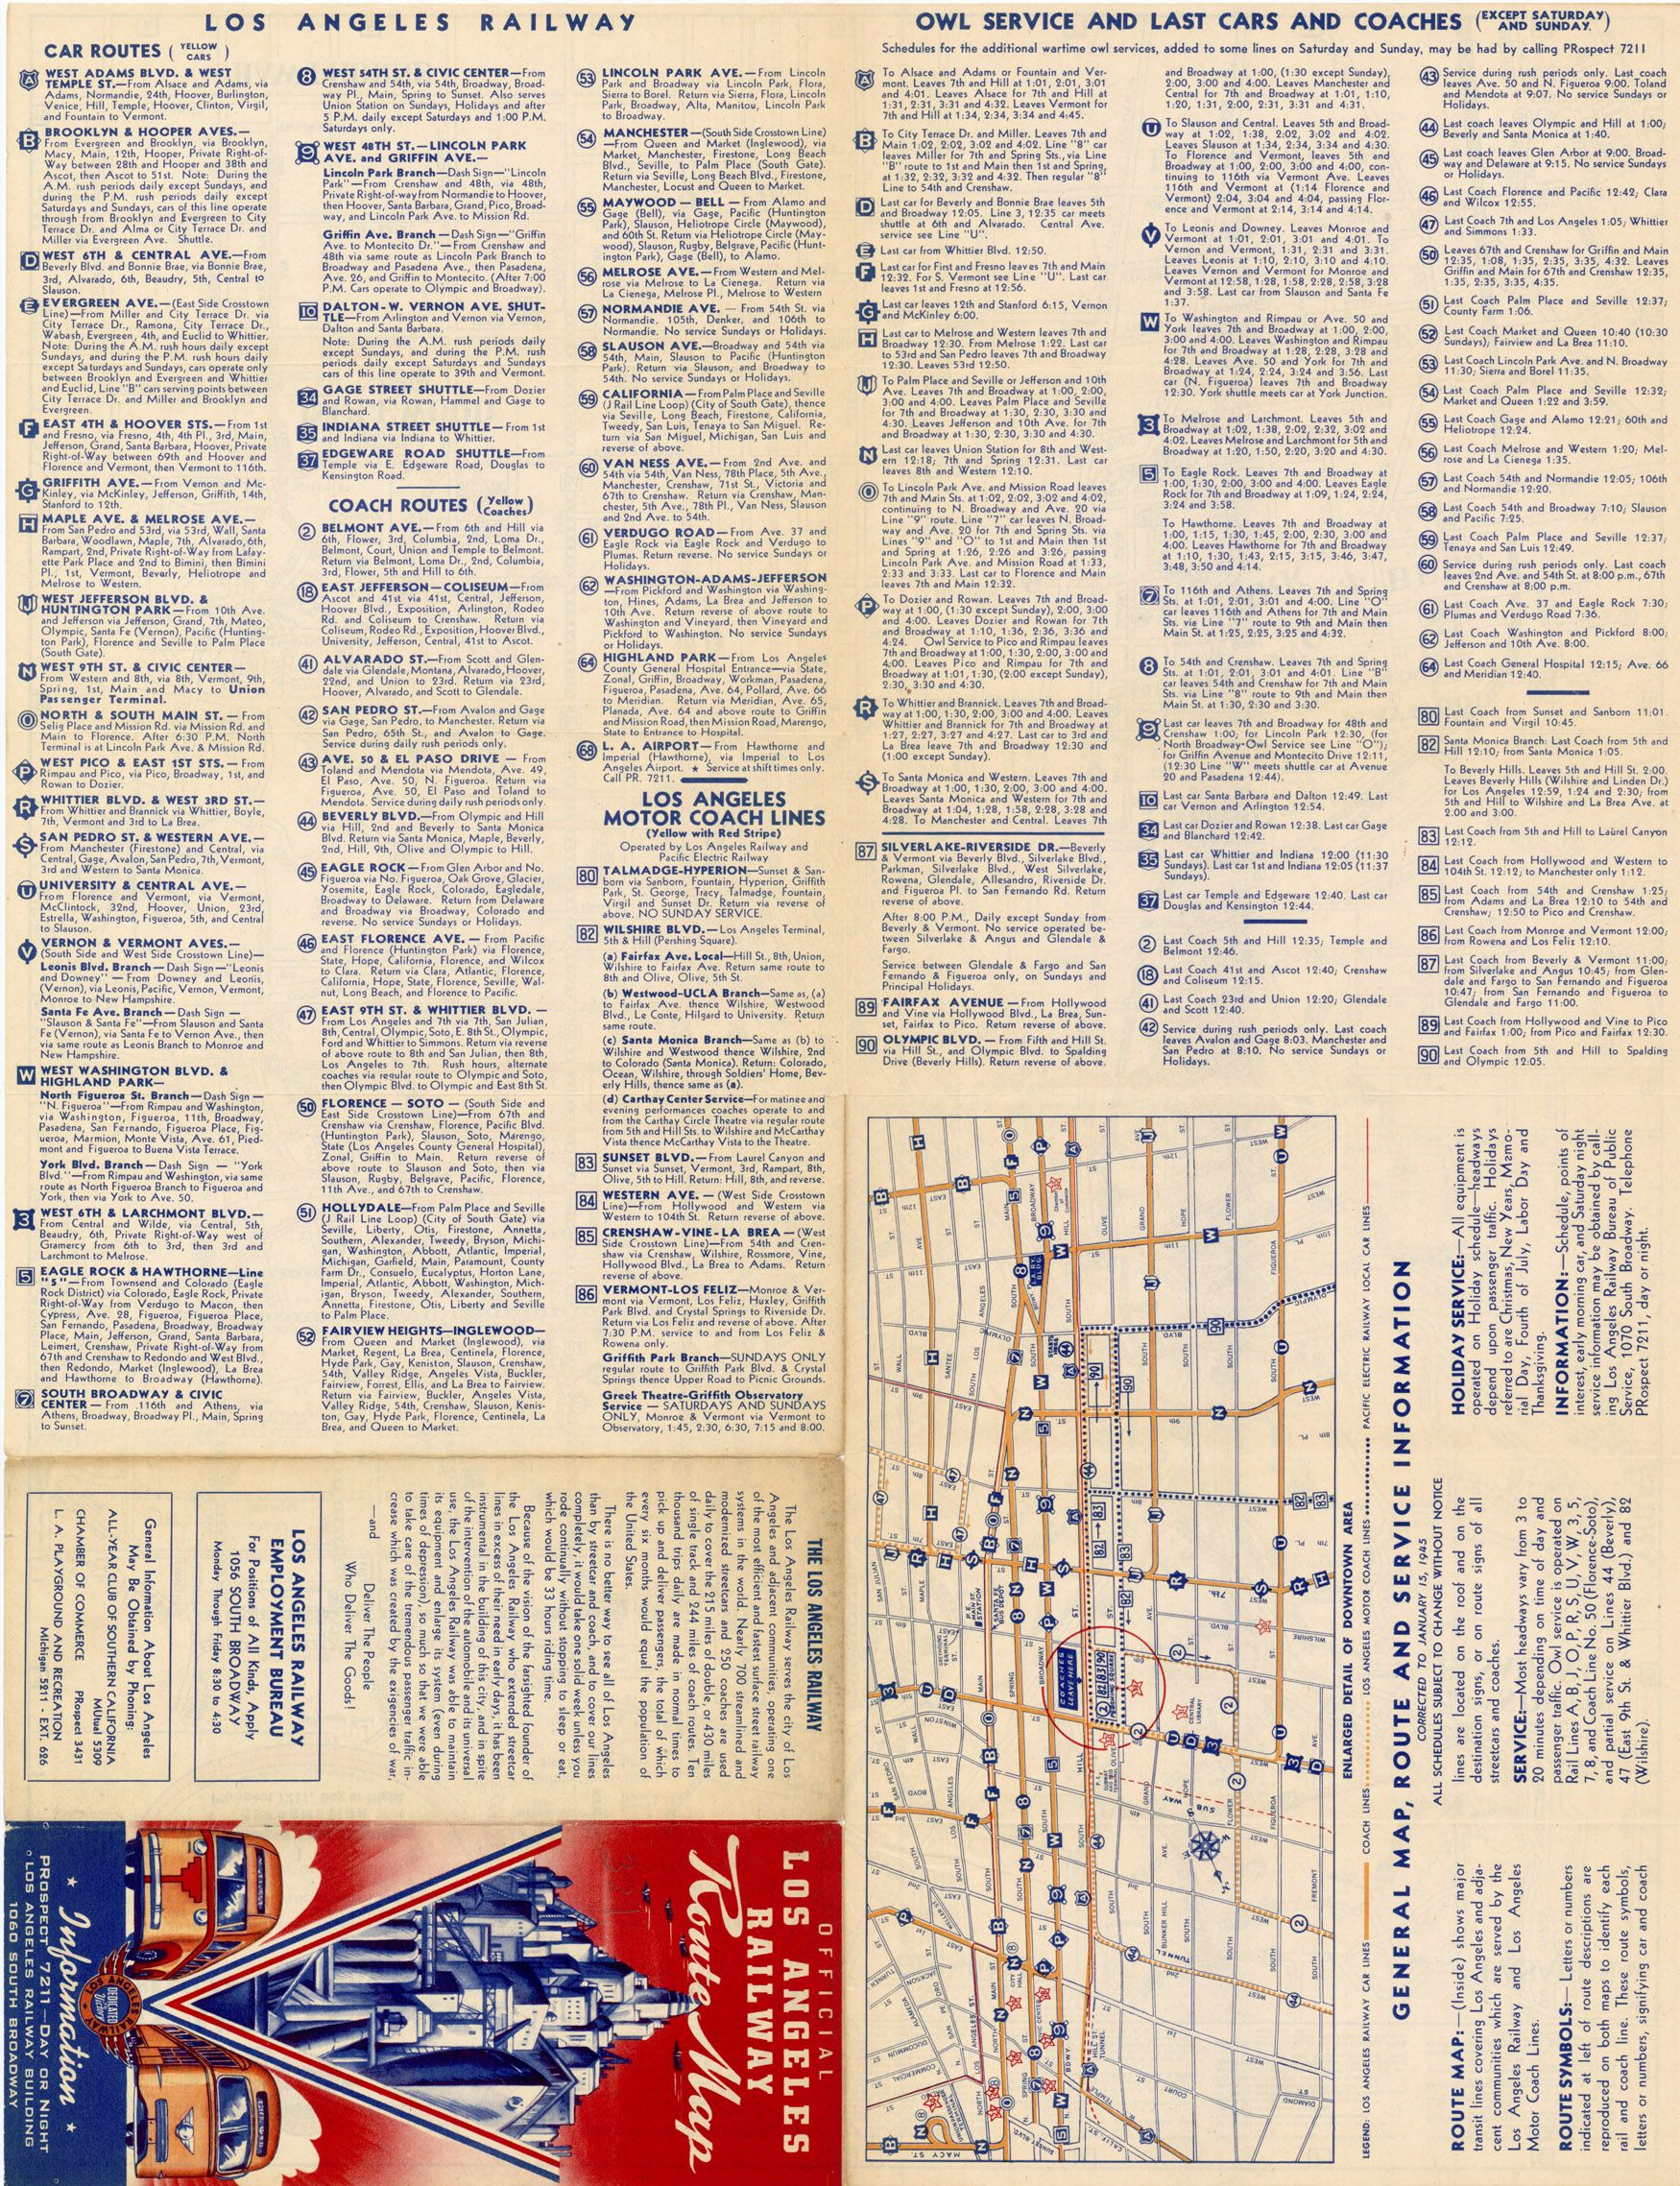 Route Map Los Angeles Railway Streetcar And Coach Routes - Los angeles route map